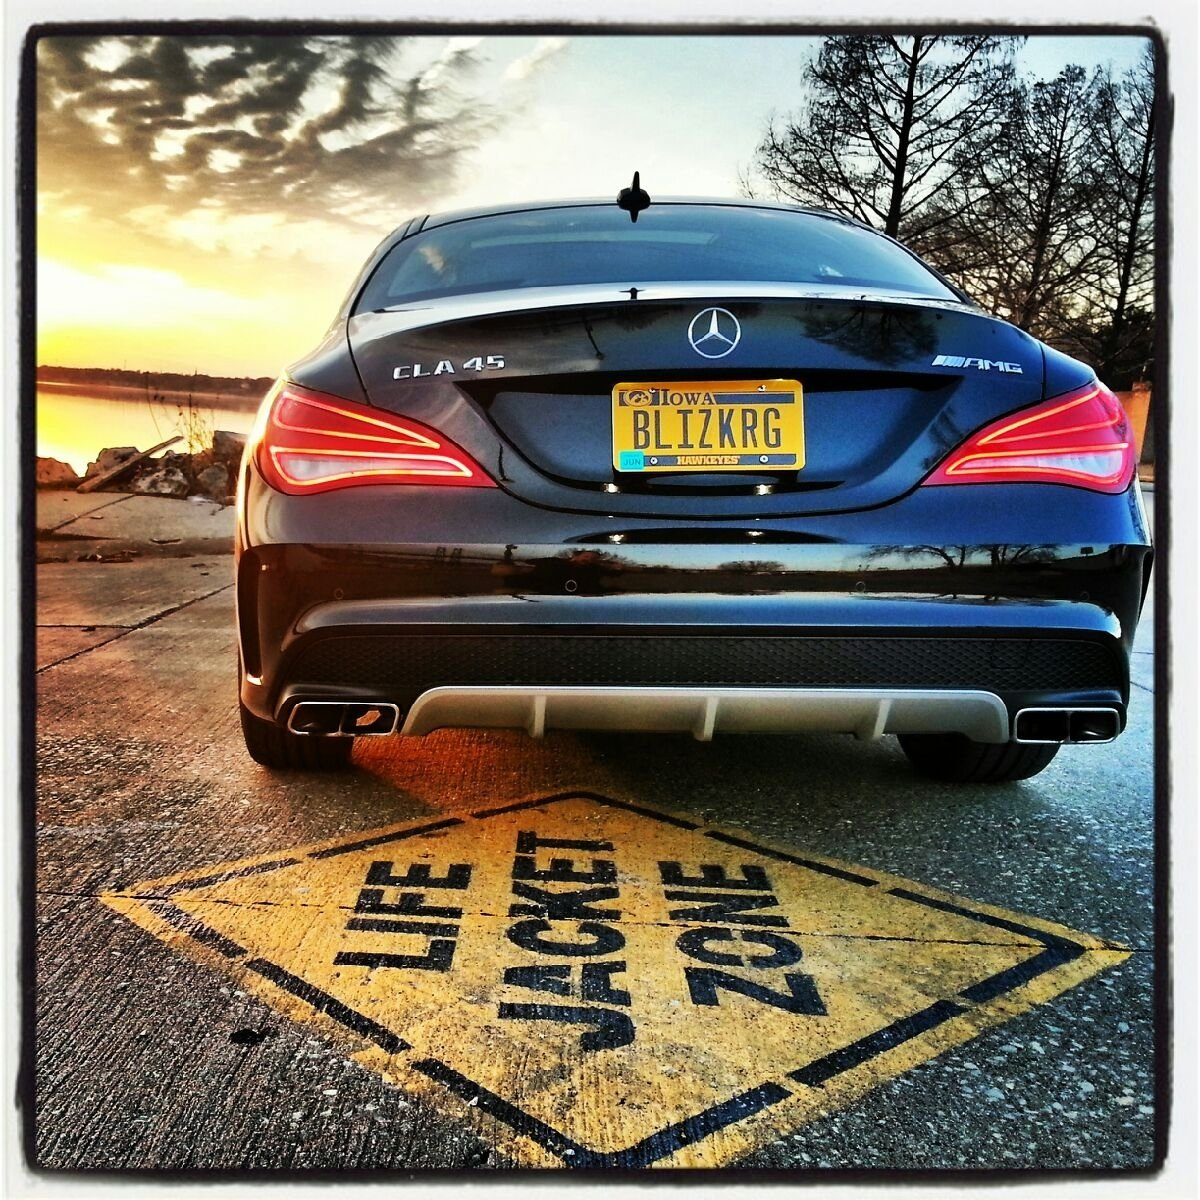 10 Most Popular License Plate Ideas For Girls awesome license plate ideas for your new cla 2021